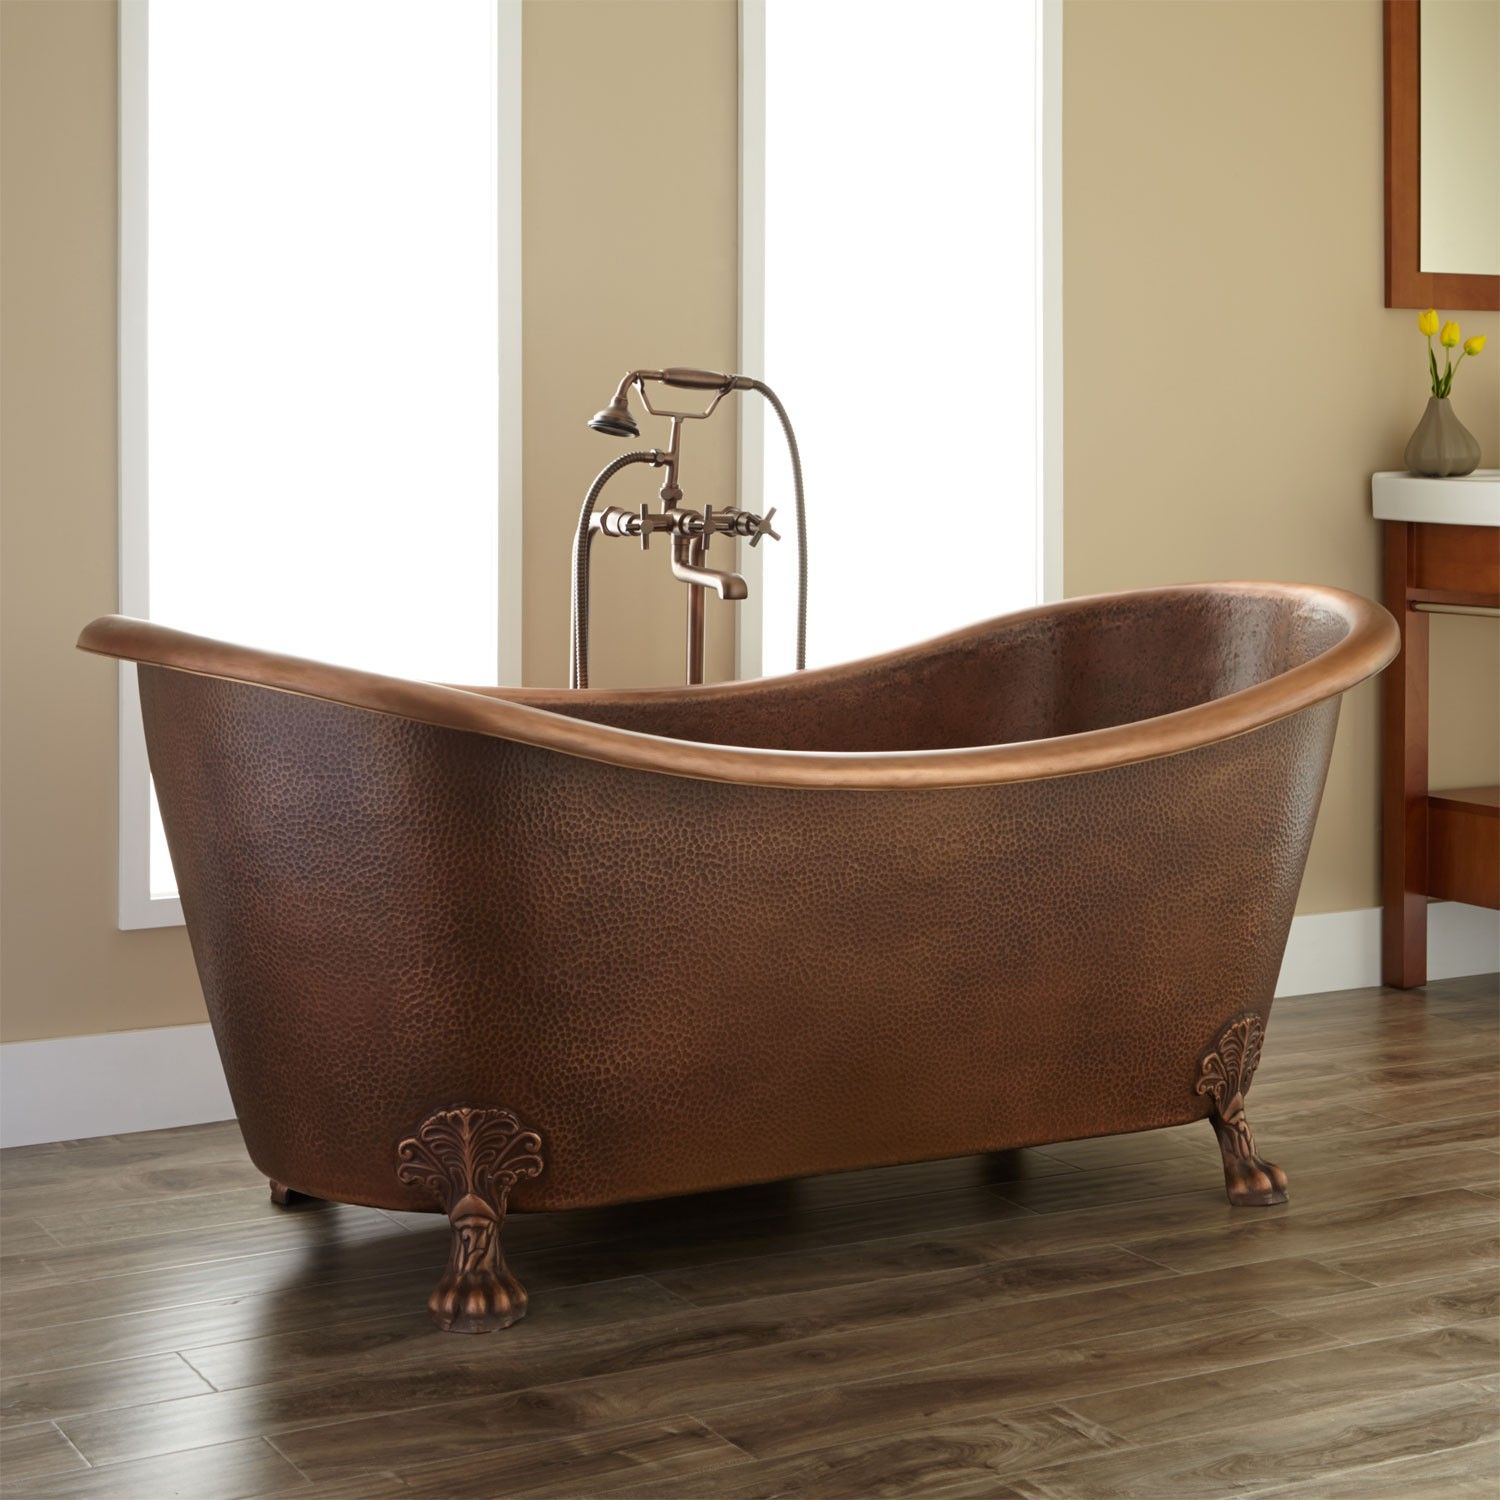 Clawfoot tubs copper doubleslipper clawfootstand alone tubs